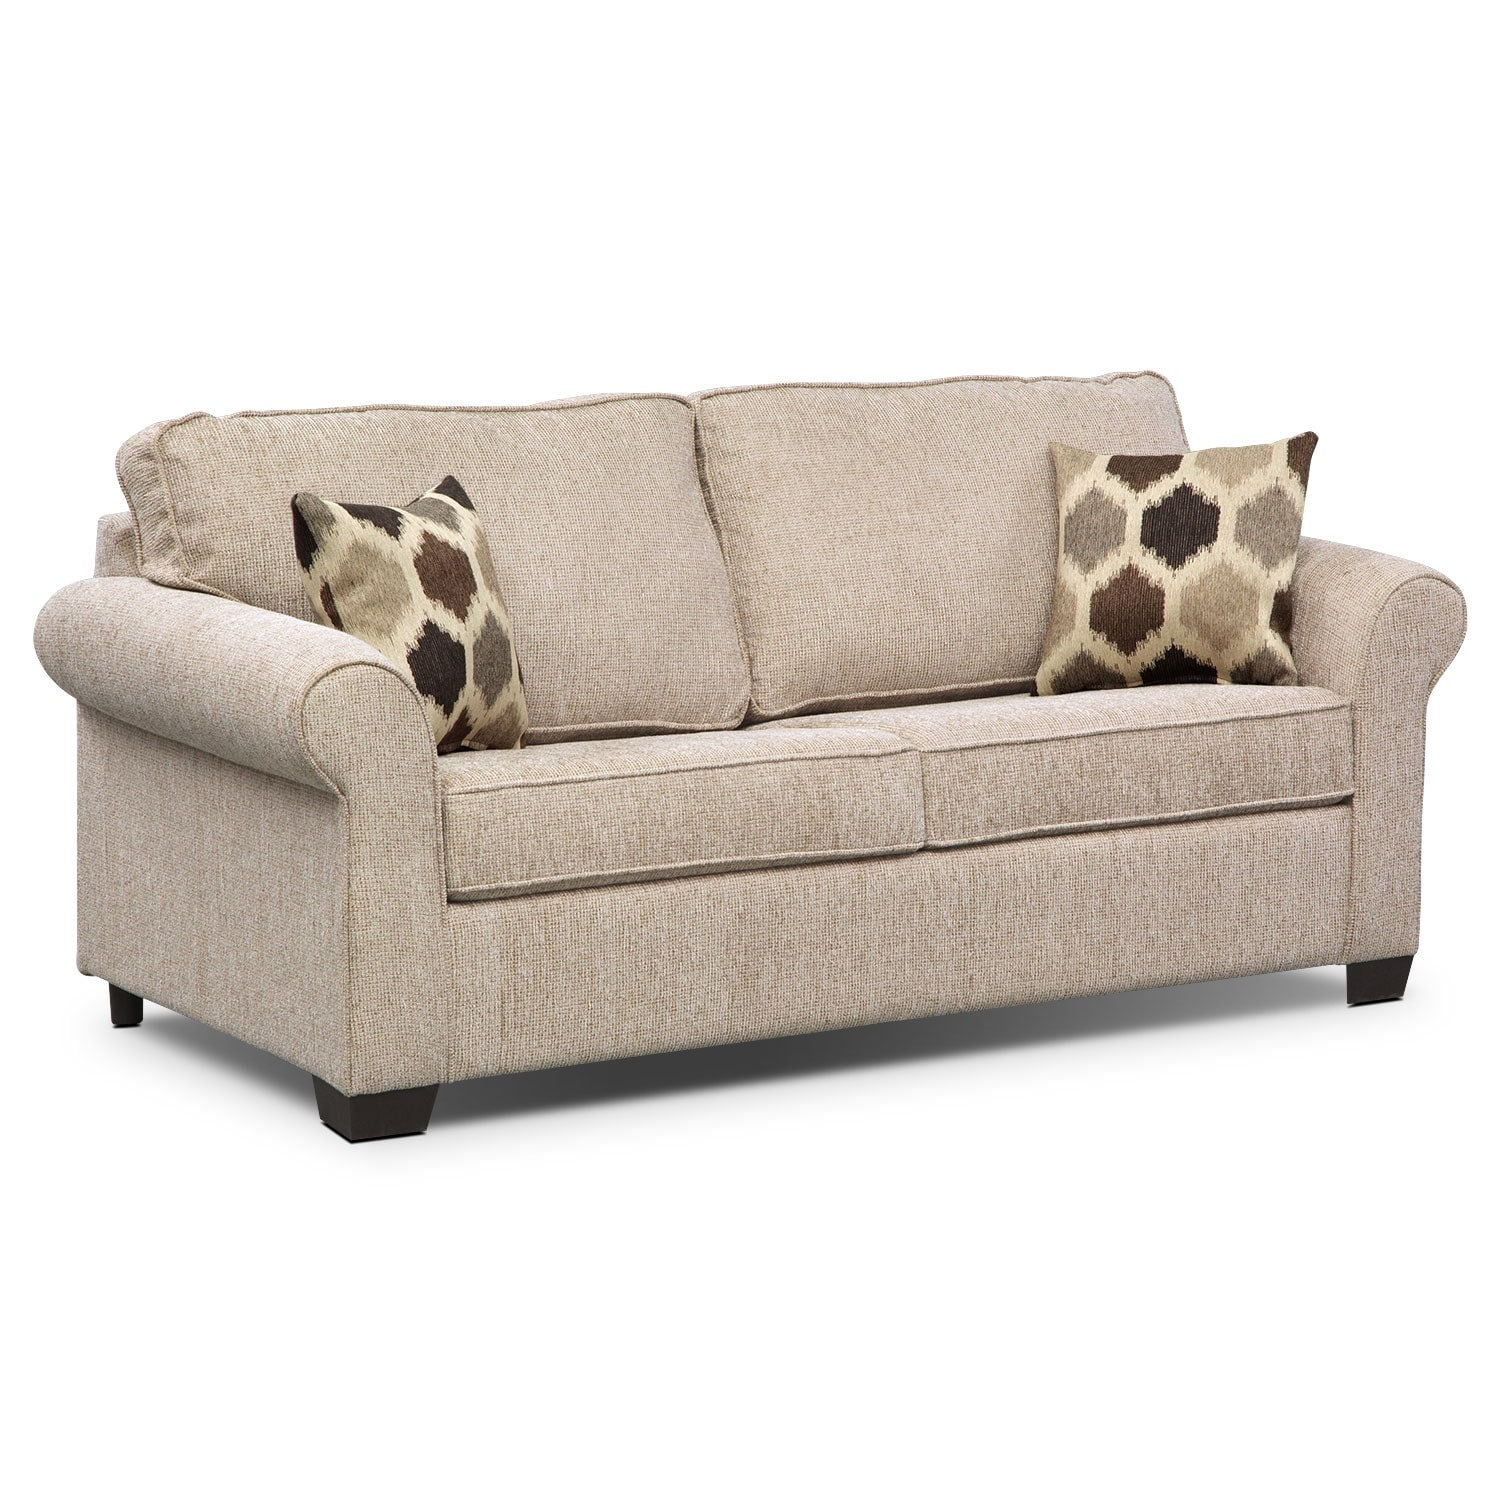 fletcher full innerspring sleeper sofa beige value city